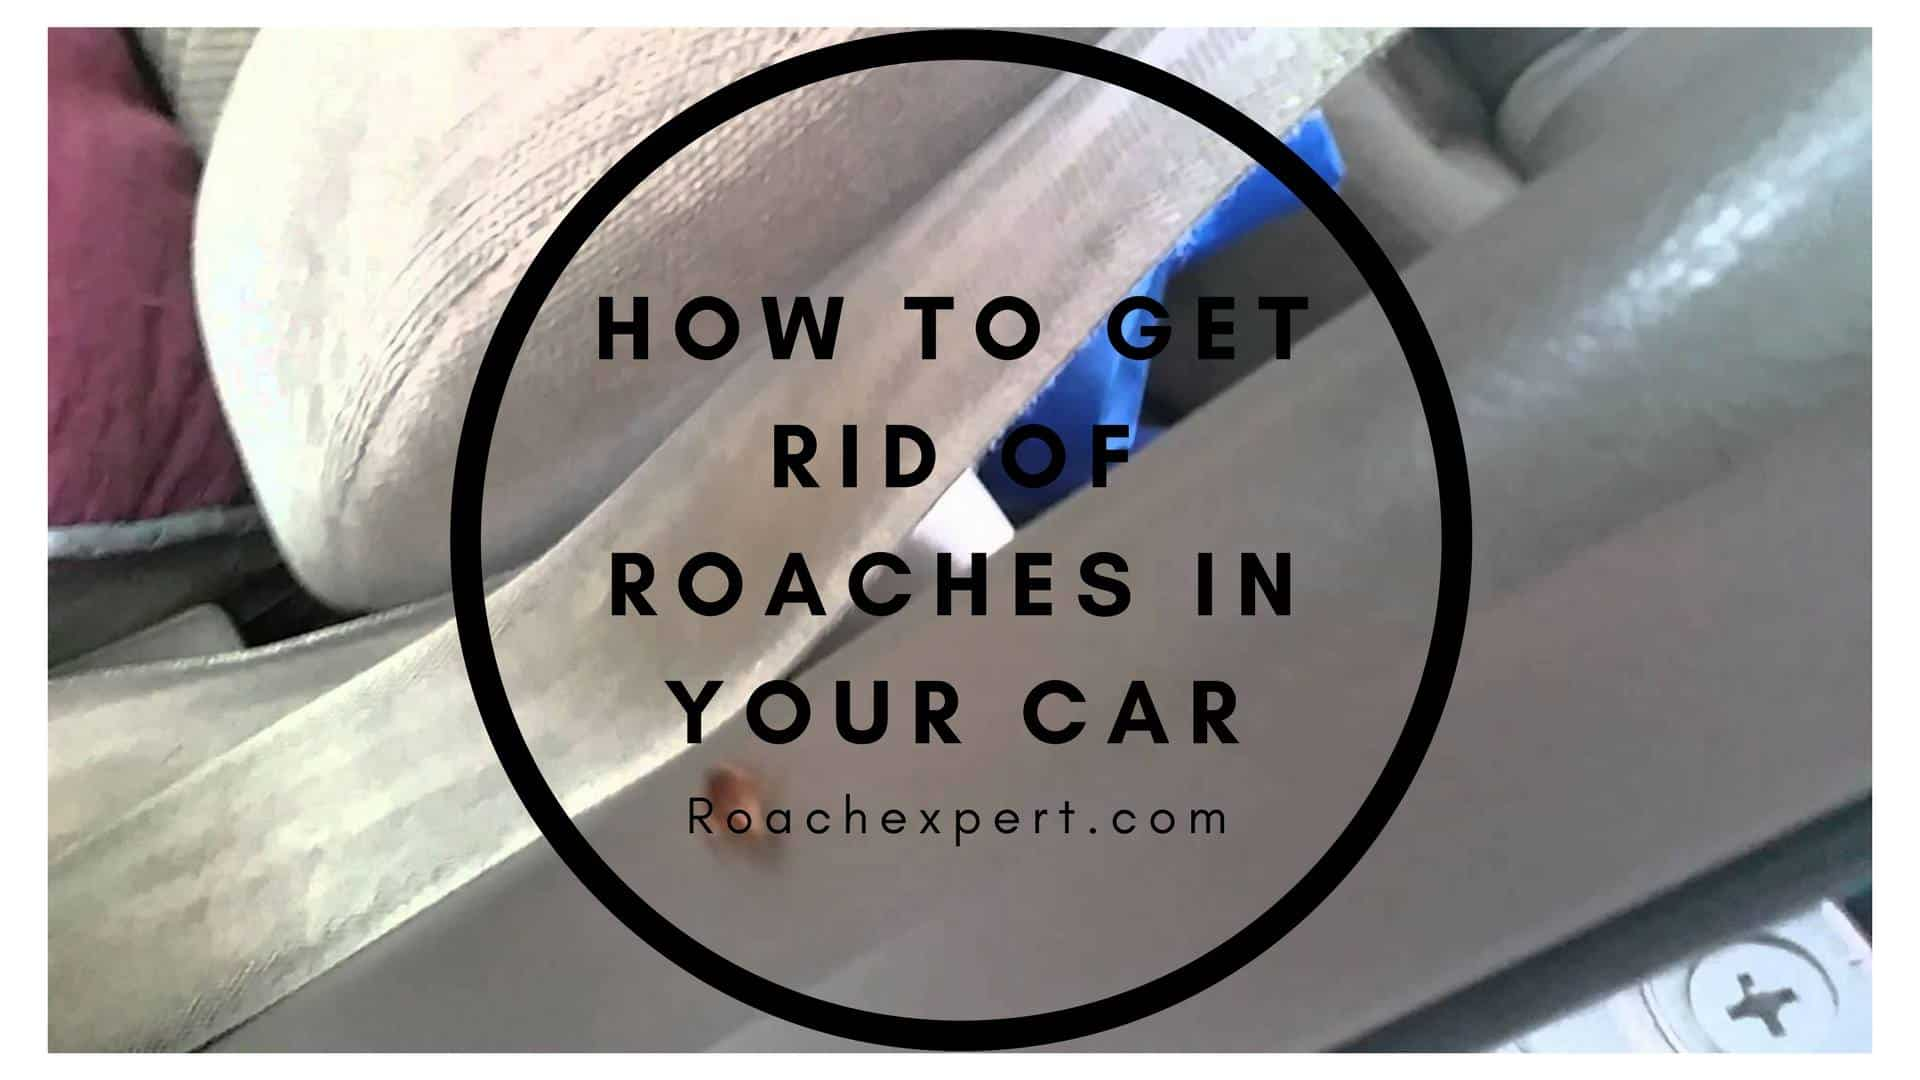 How To Get Rid Of Roaches In Your Car